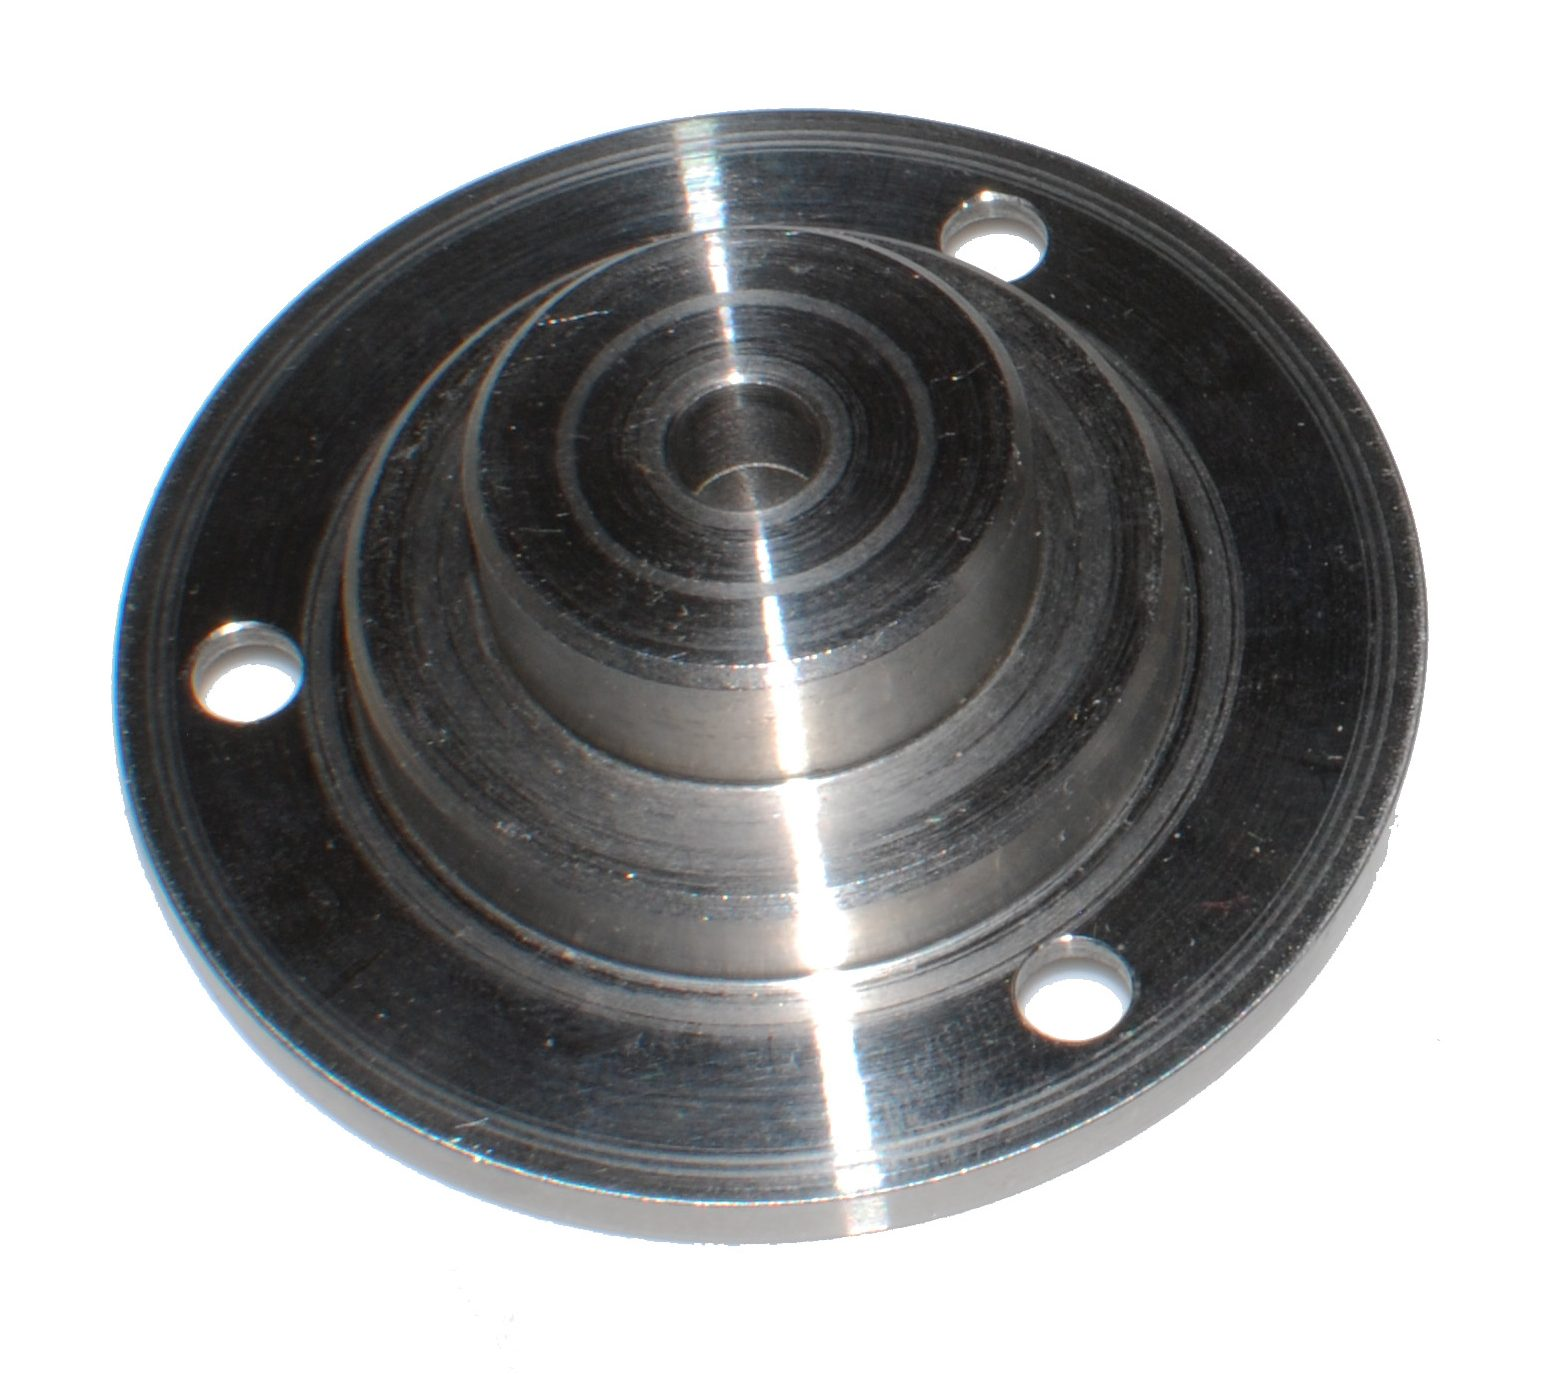 esite wheel hub adapter buy affordable parts online